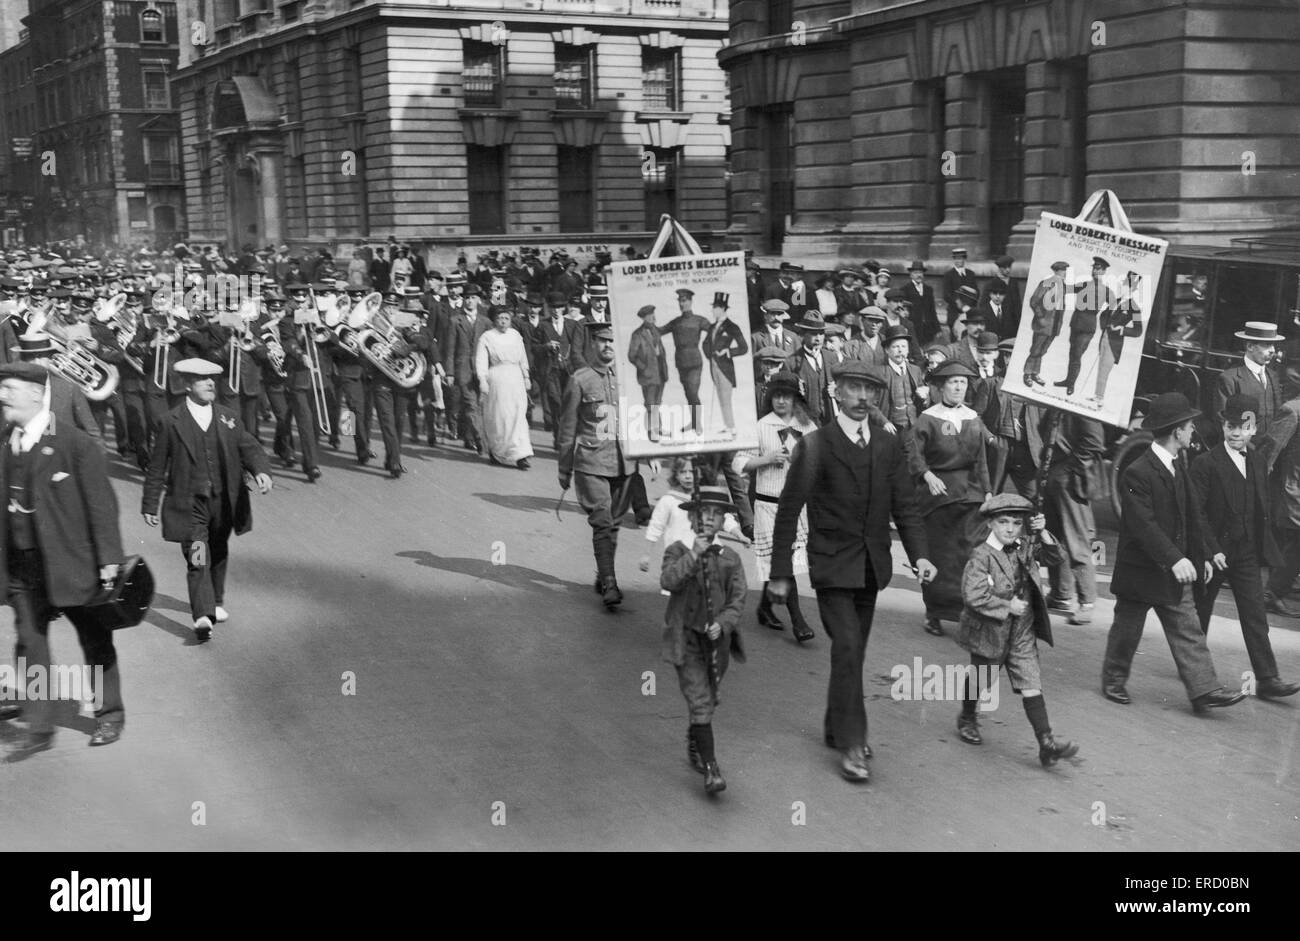 Two small boys carrying banners with the message from Lord Roberts 'Be a credit to yourself and the nation' - Stock Image